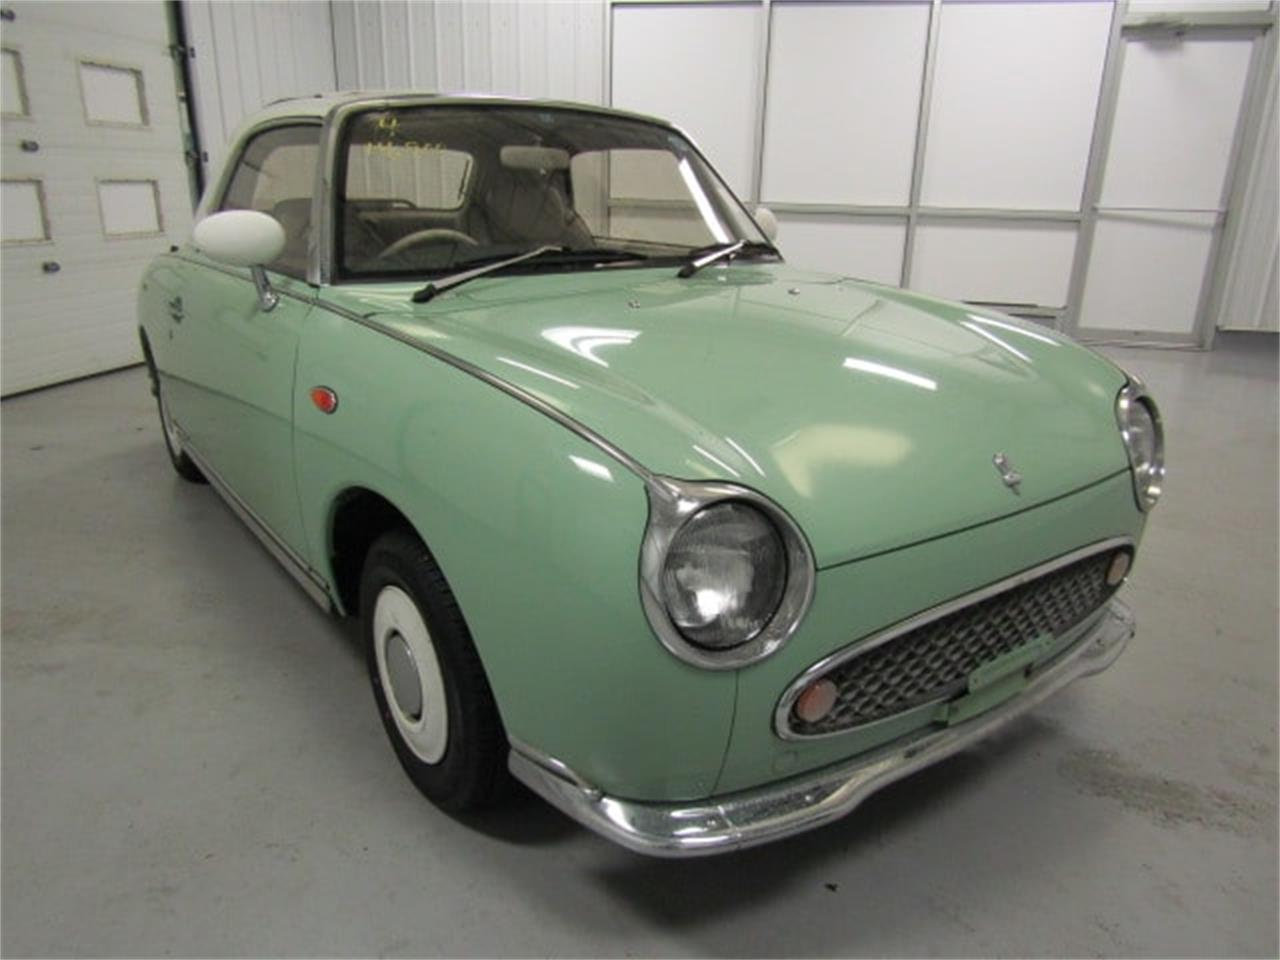 Large Picture of 1991 Nissan Figaro located in Virginia - $10,900.00 Offered by Duncan Imports & Classic Cars - K2PU